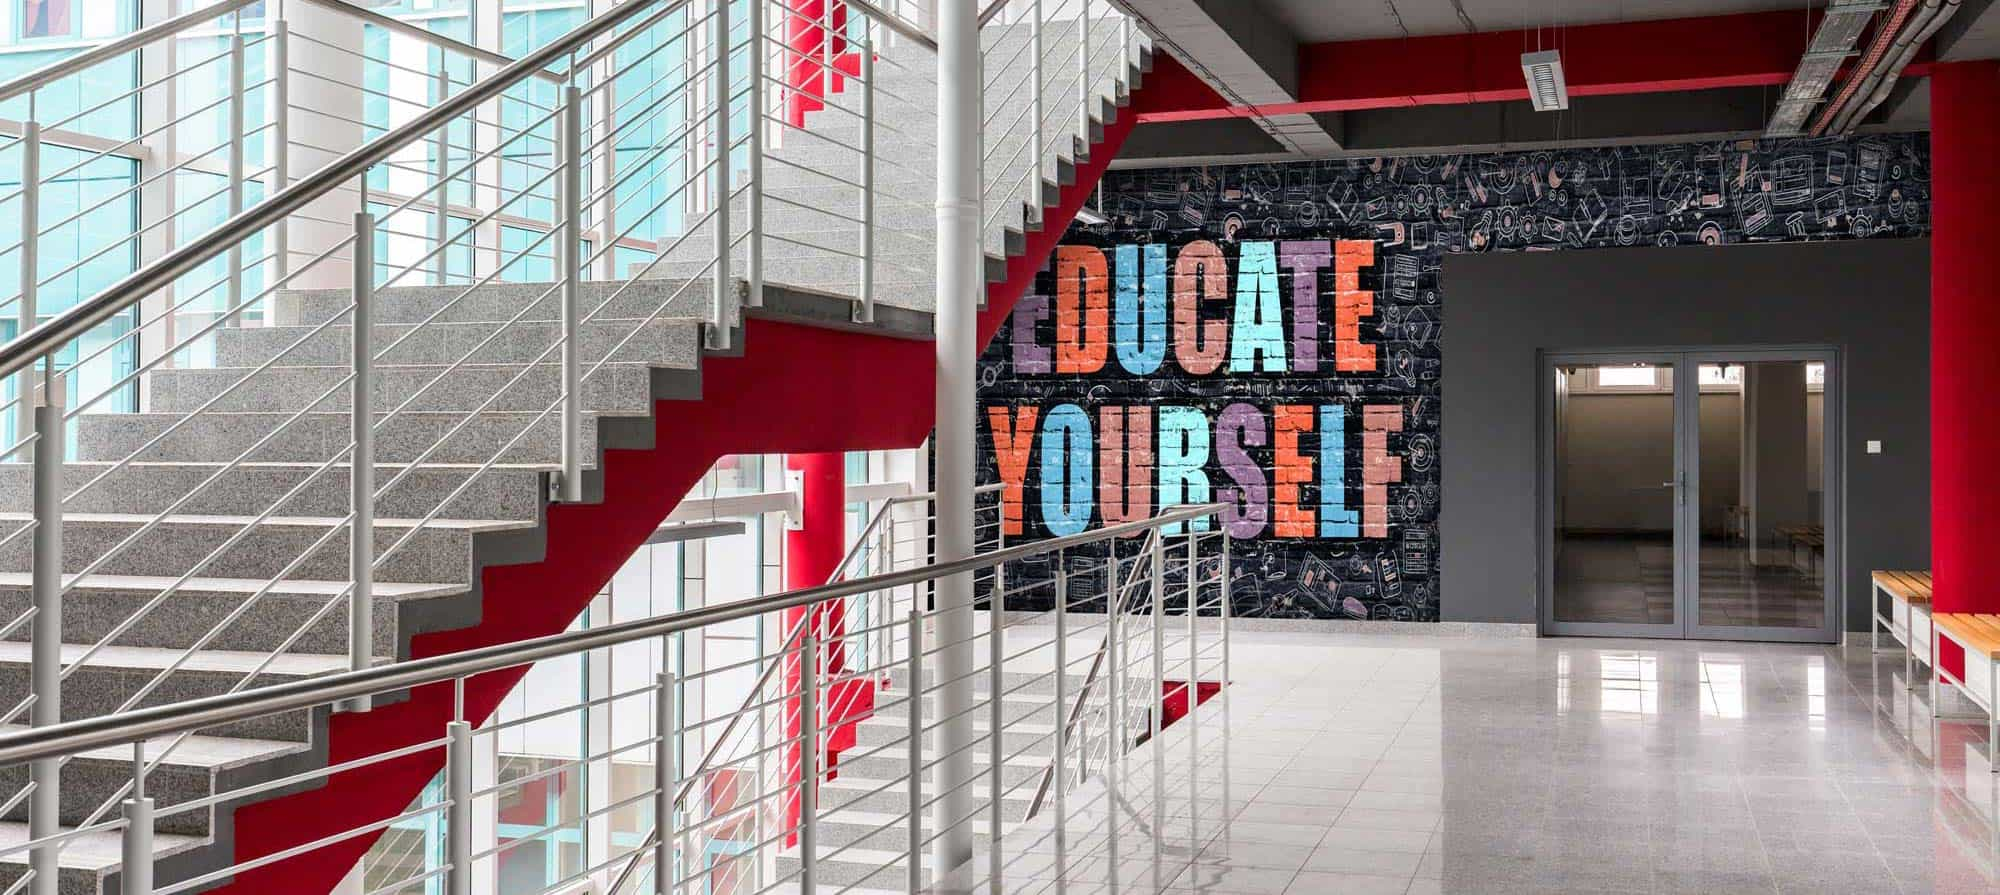 Inspirational wall graphic in a school